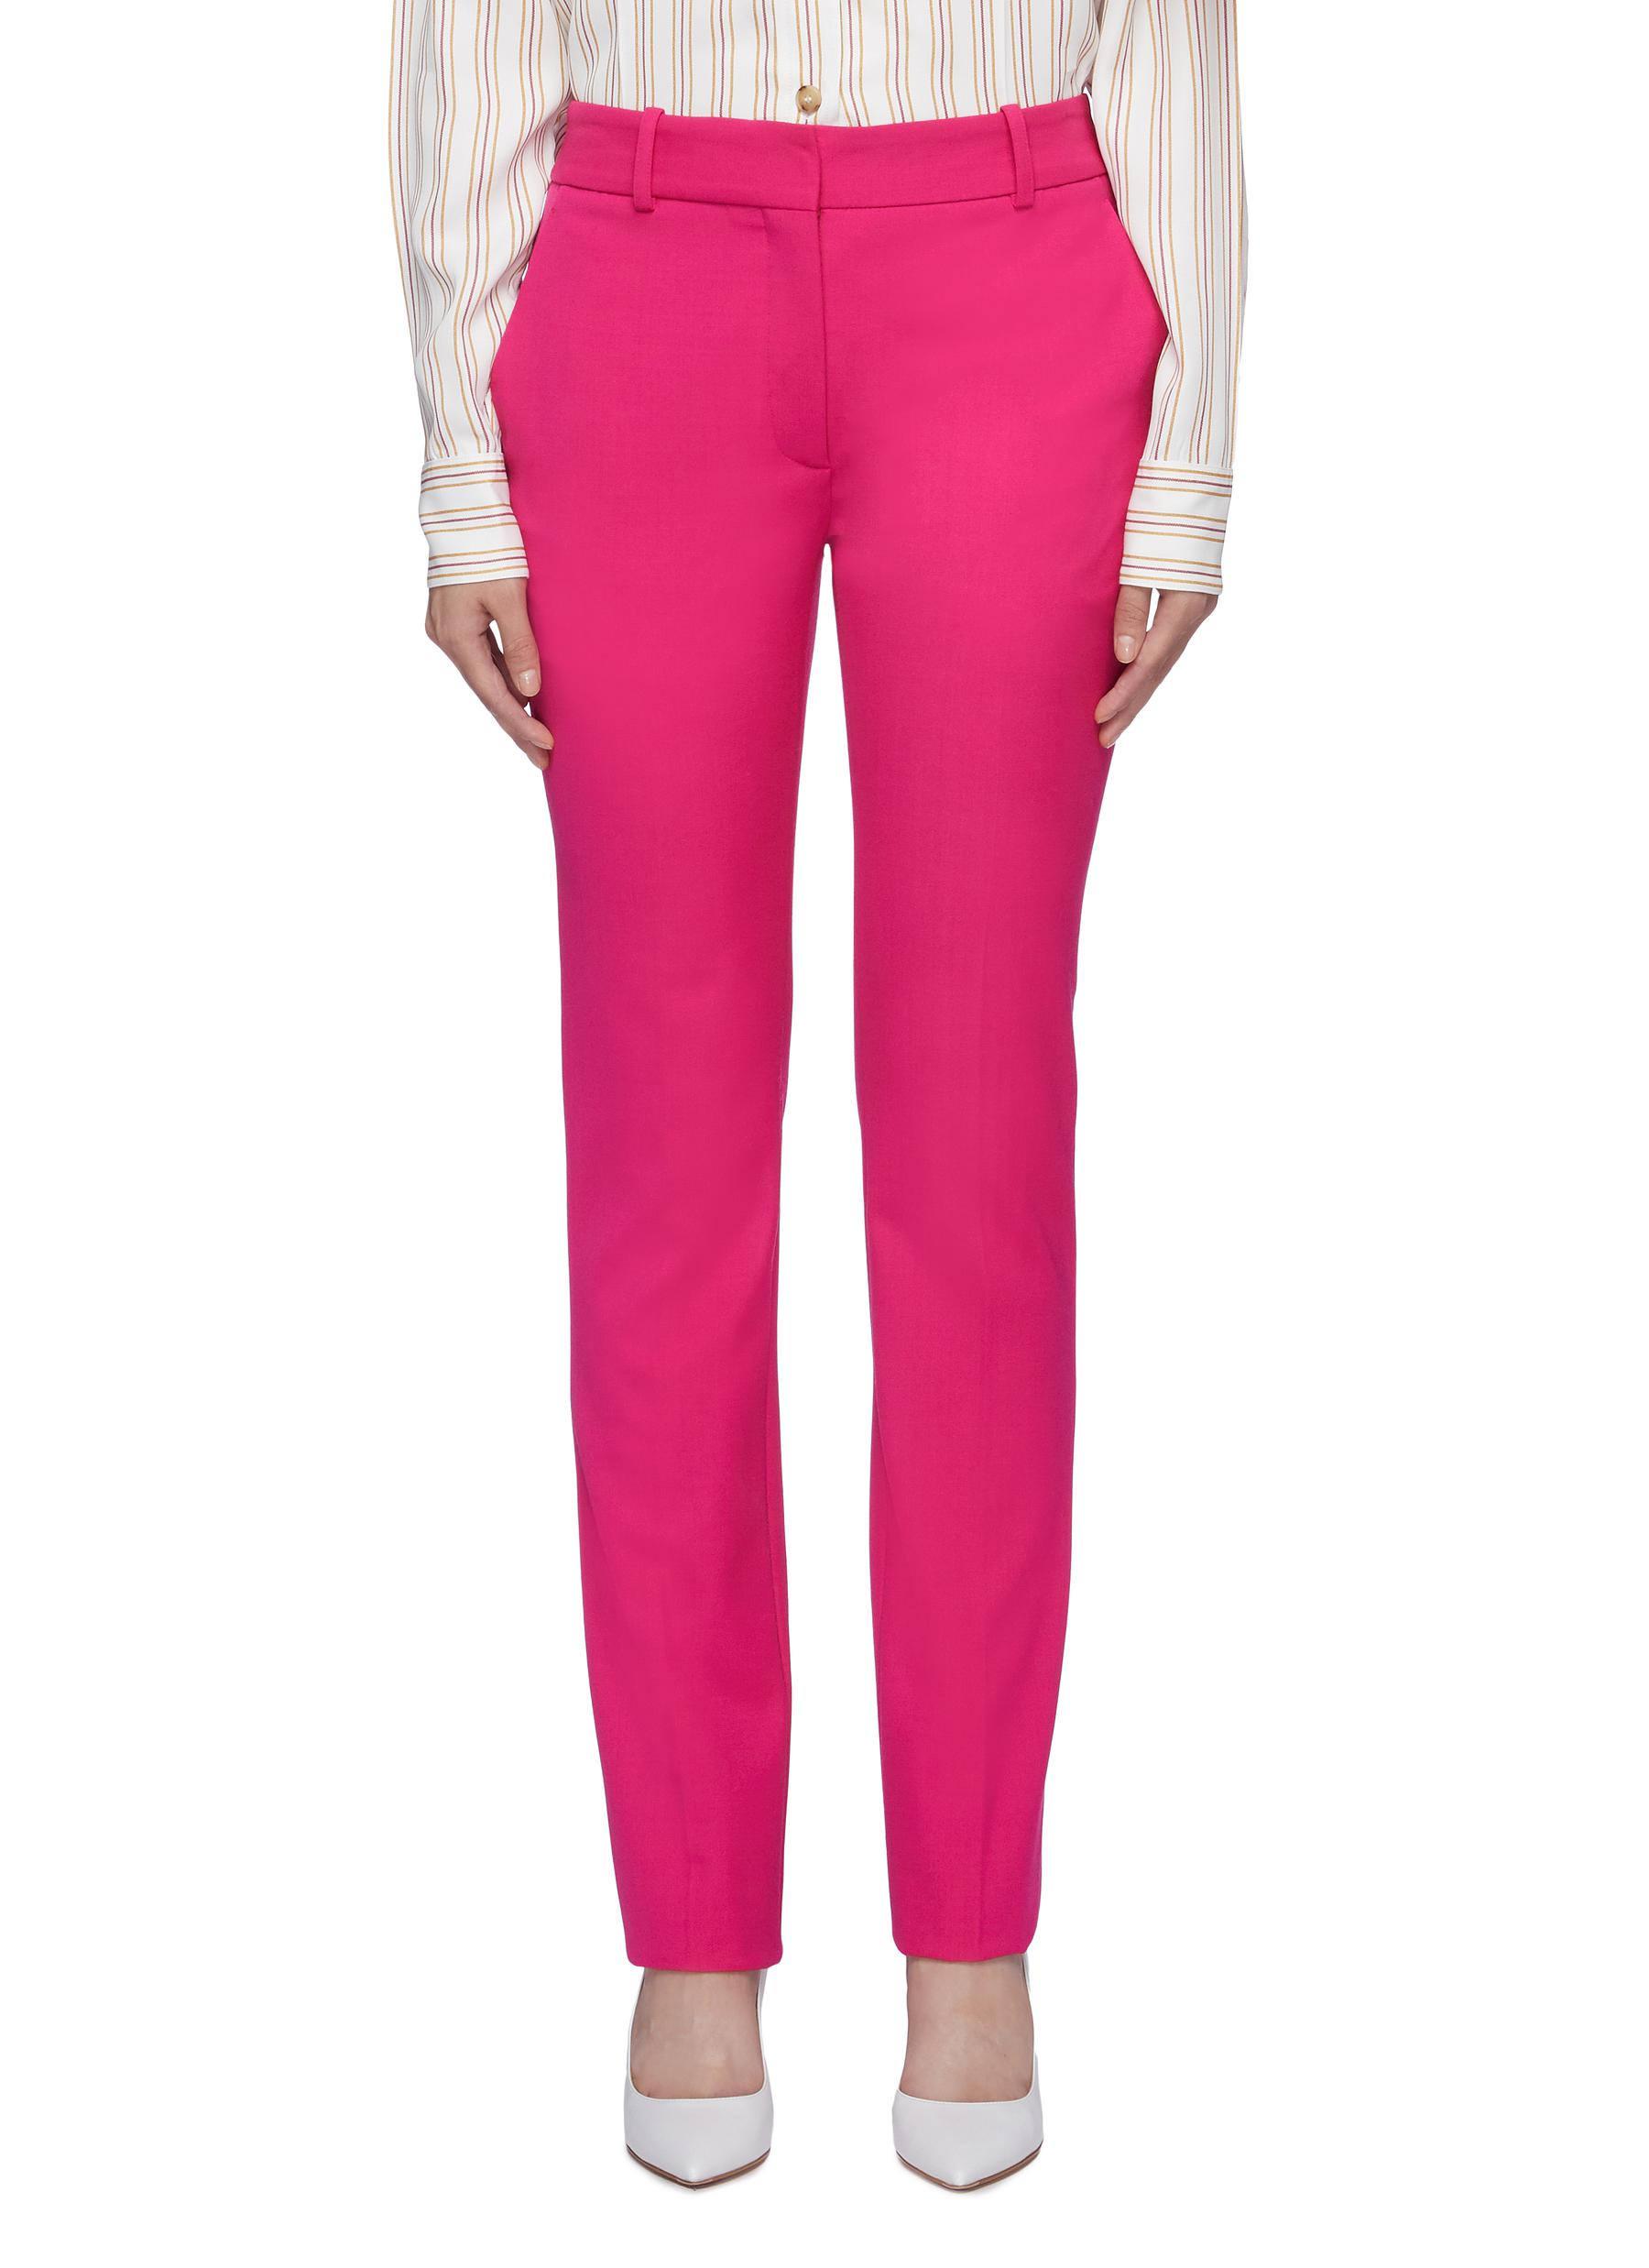 Tapered suiting pants by Victoria Beckham